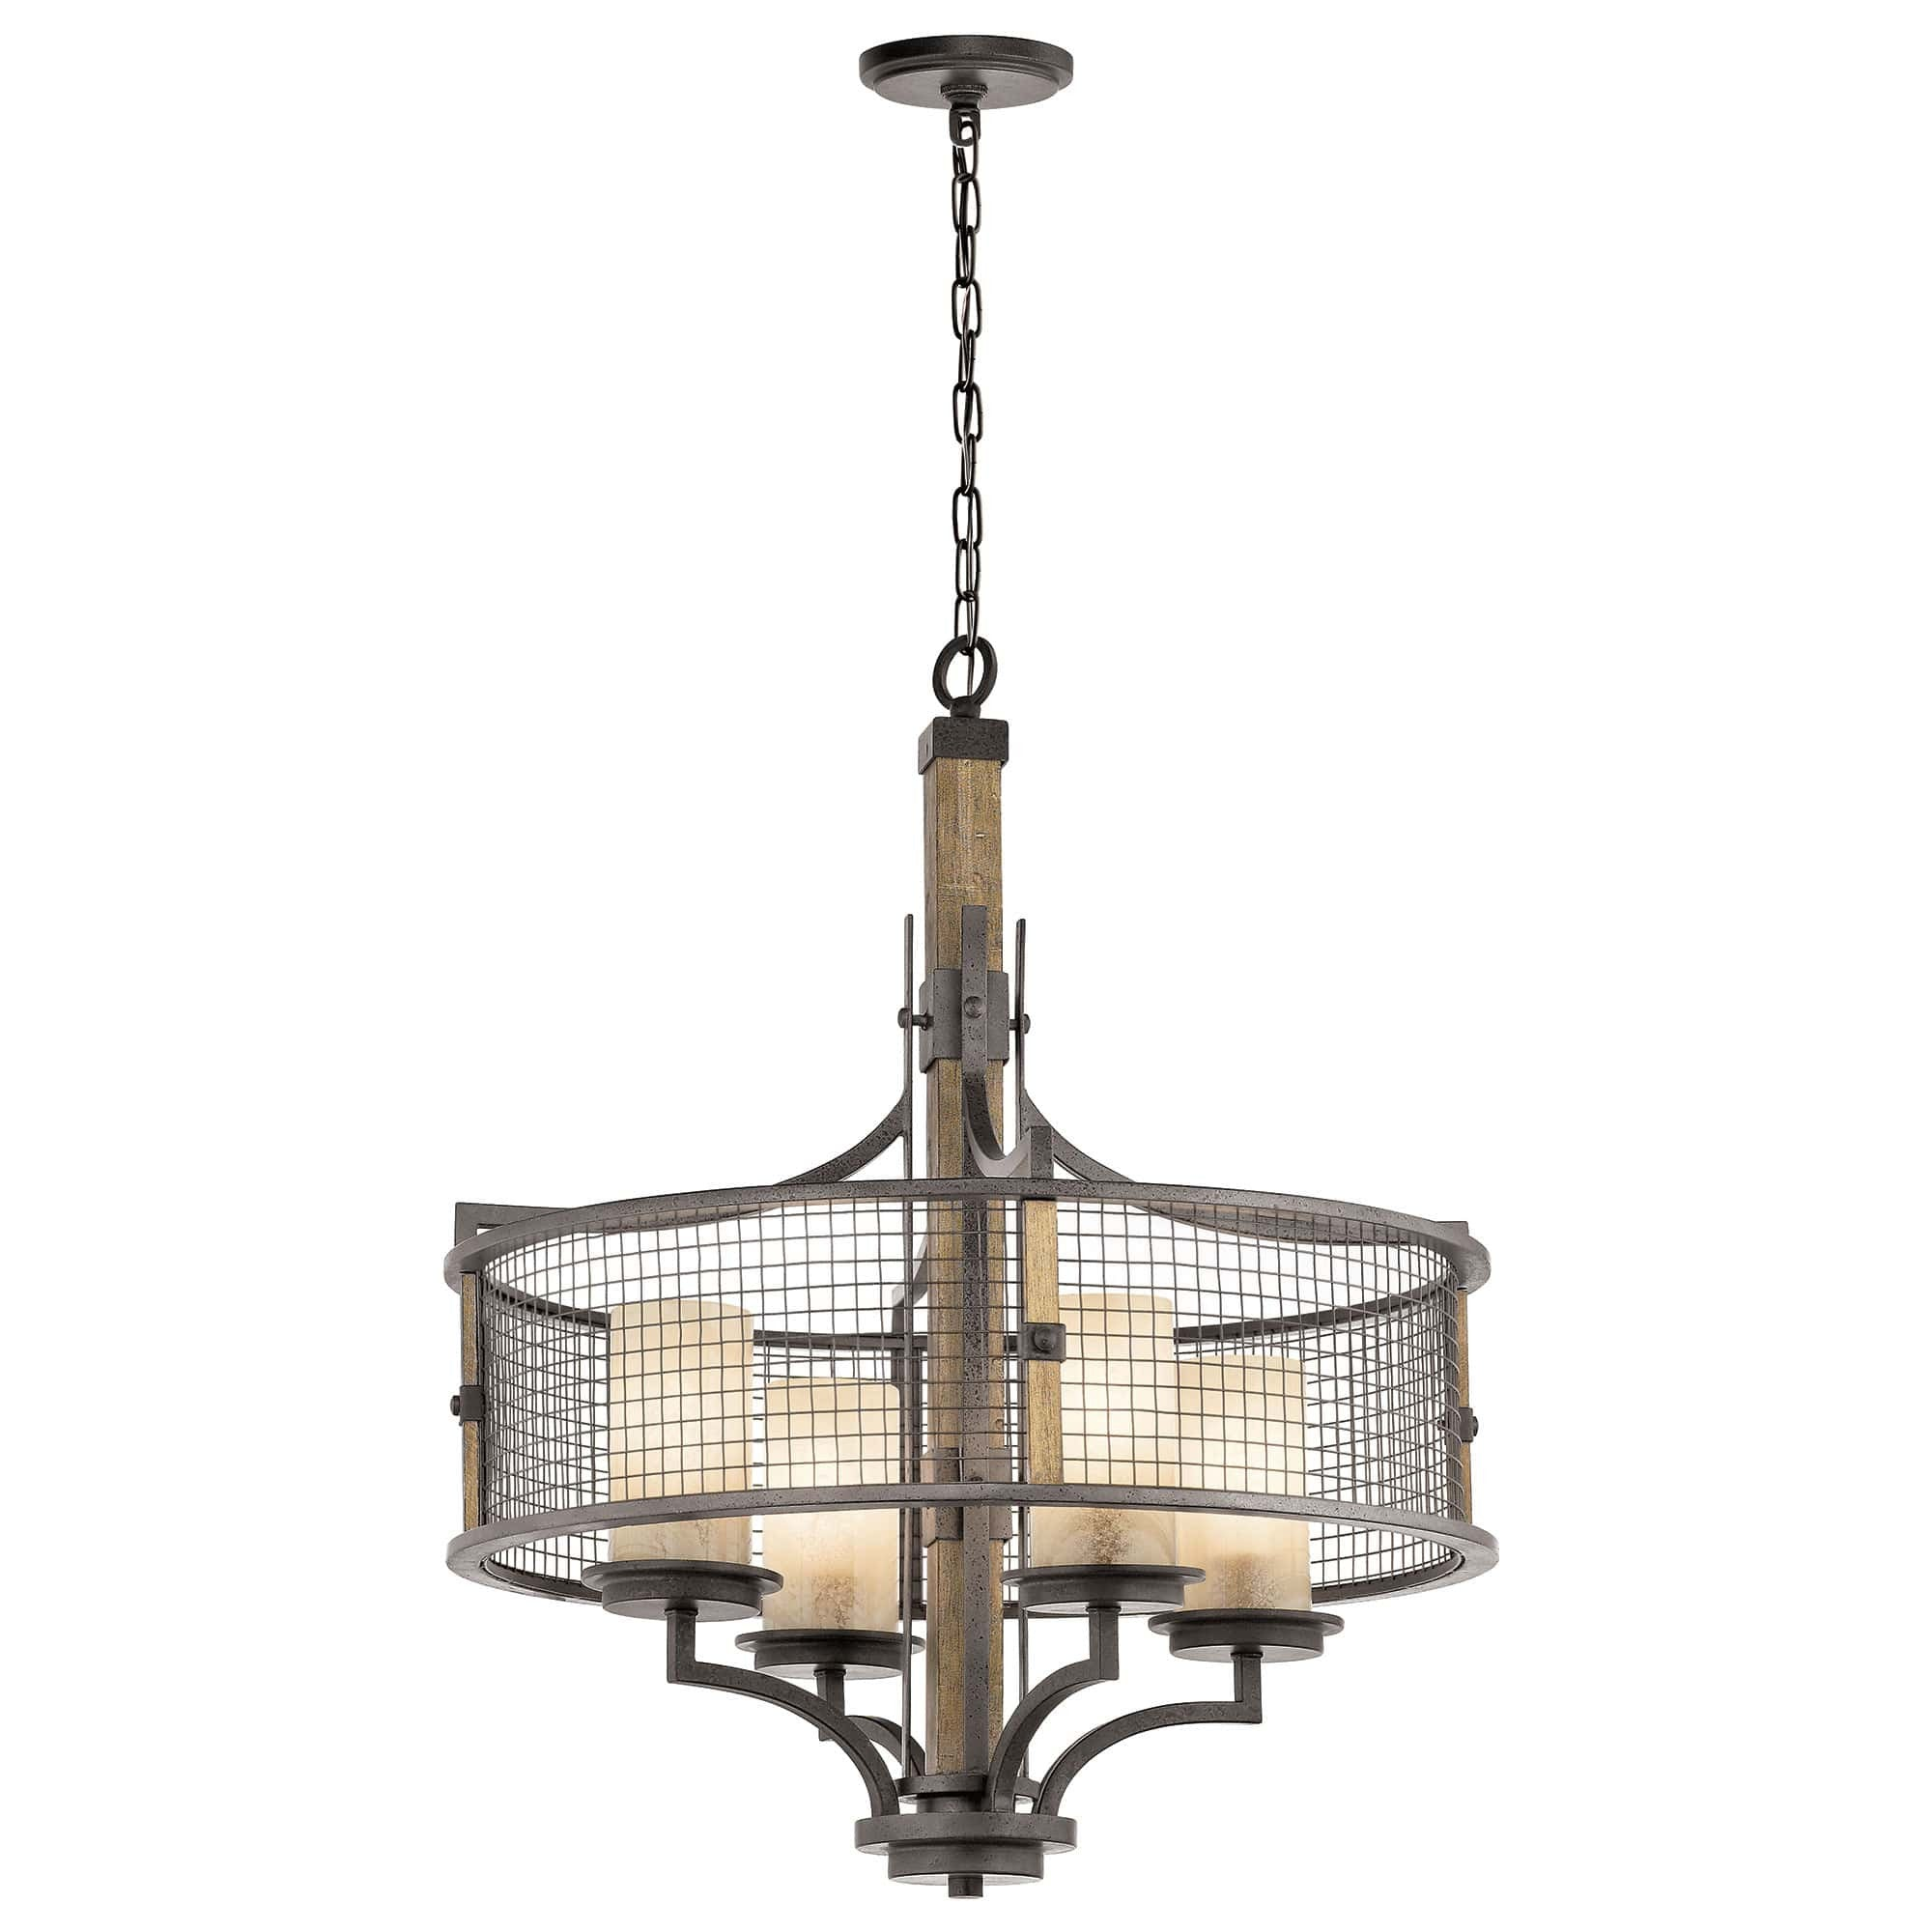 williamsburg bronze chandelier diana candle kichler shop light chandeliers glass clear olde in pd